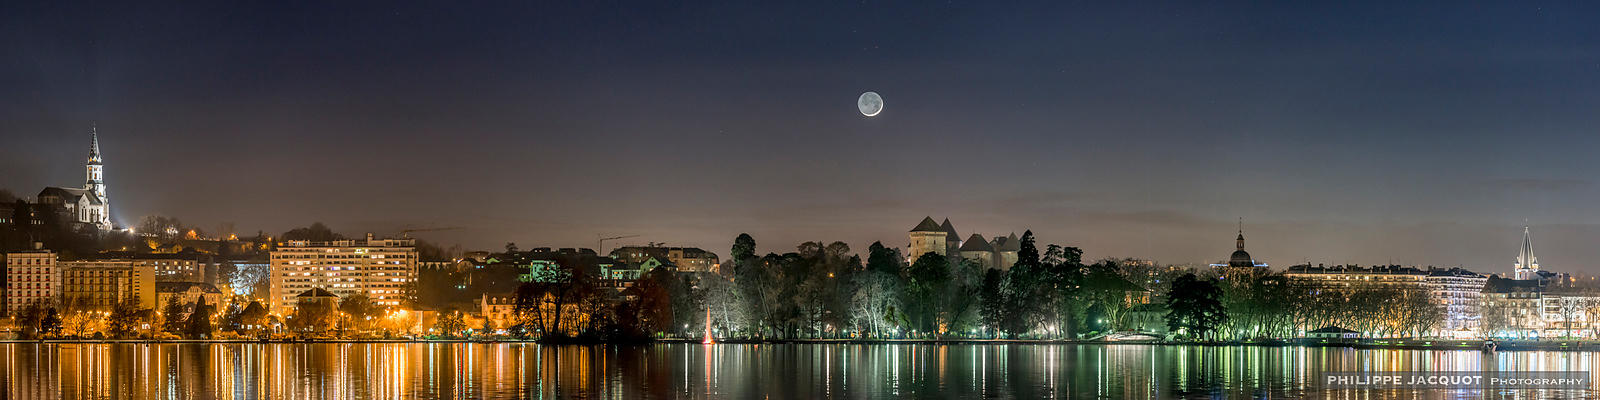 Crescent moon - Annecy